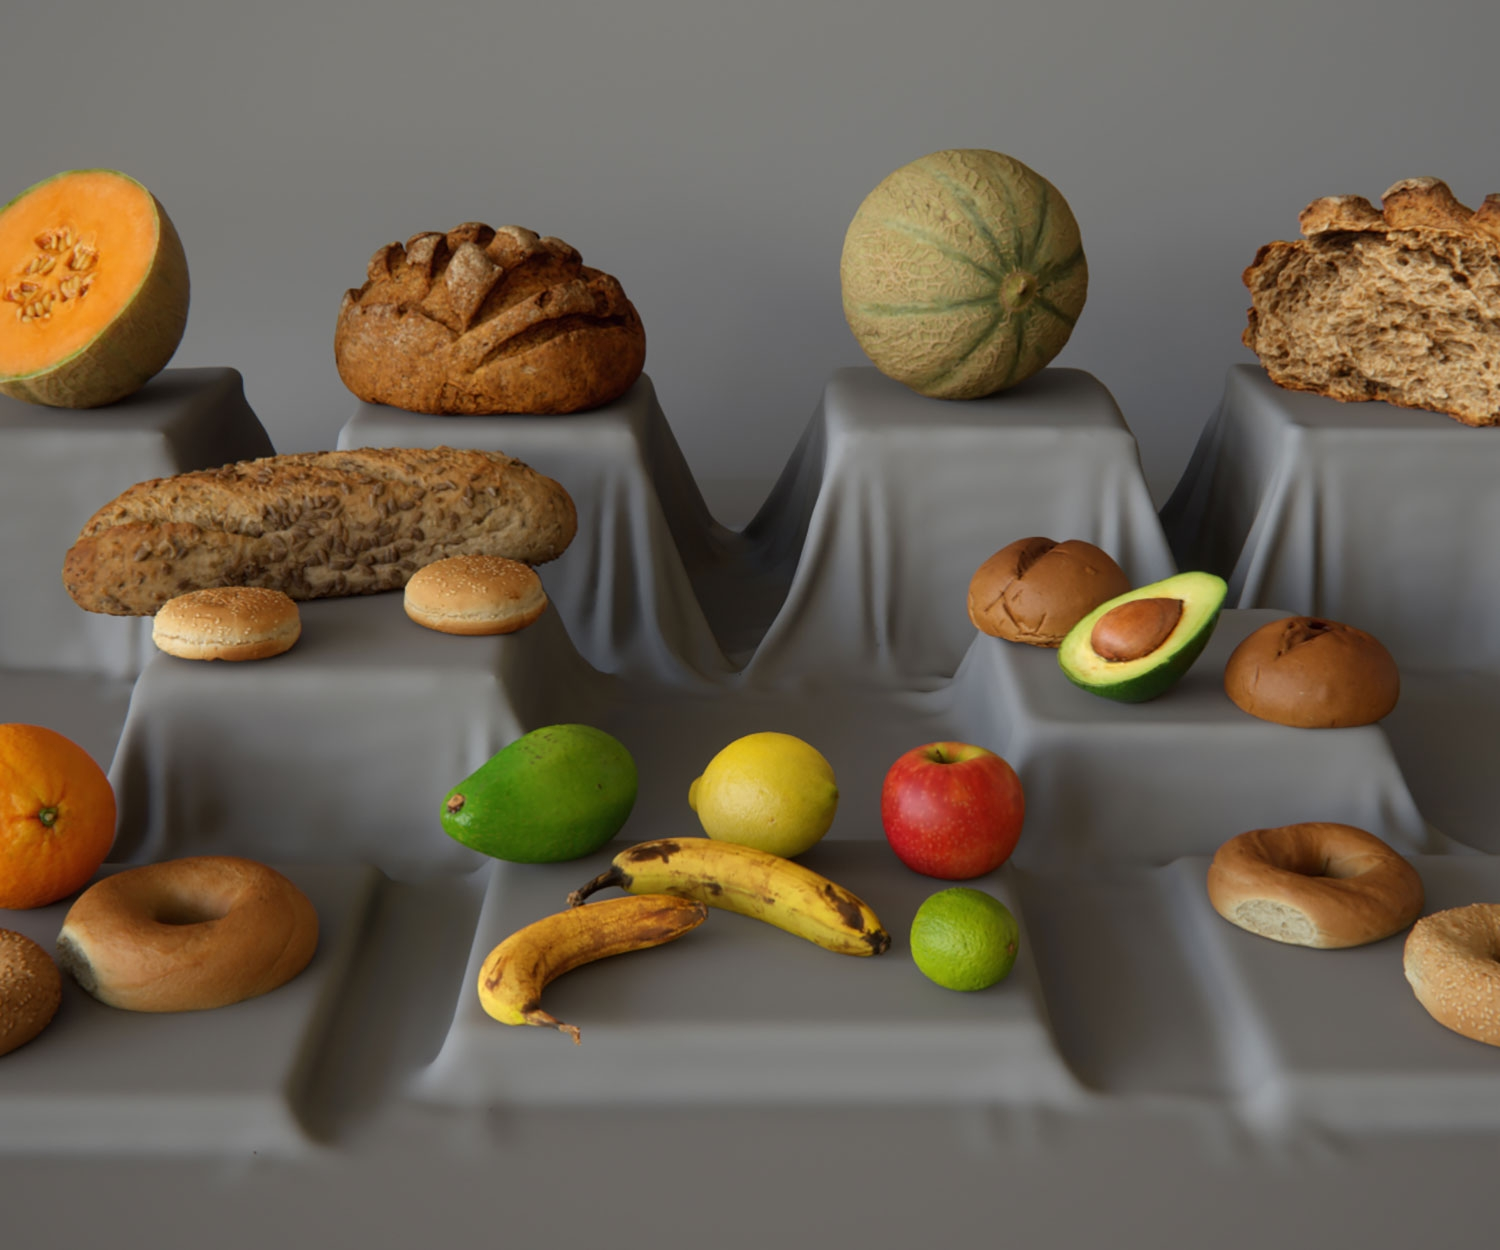 Download 3D scans of real objects with this new online store